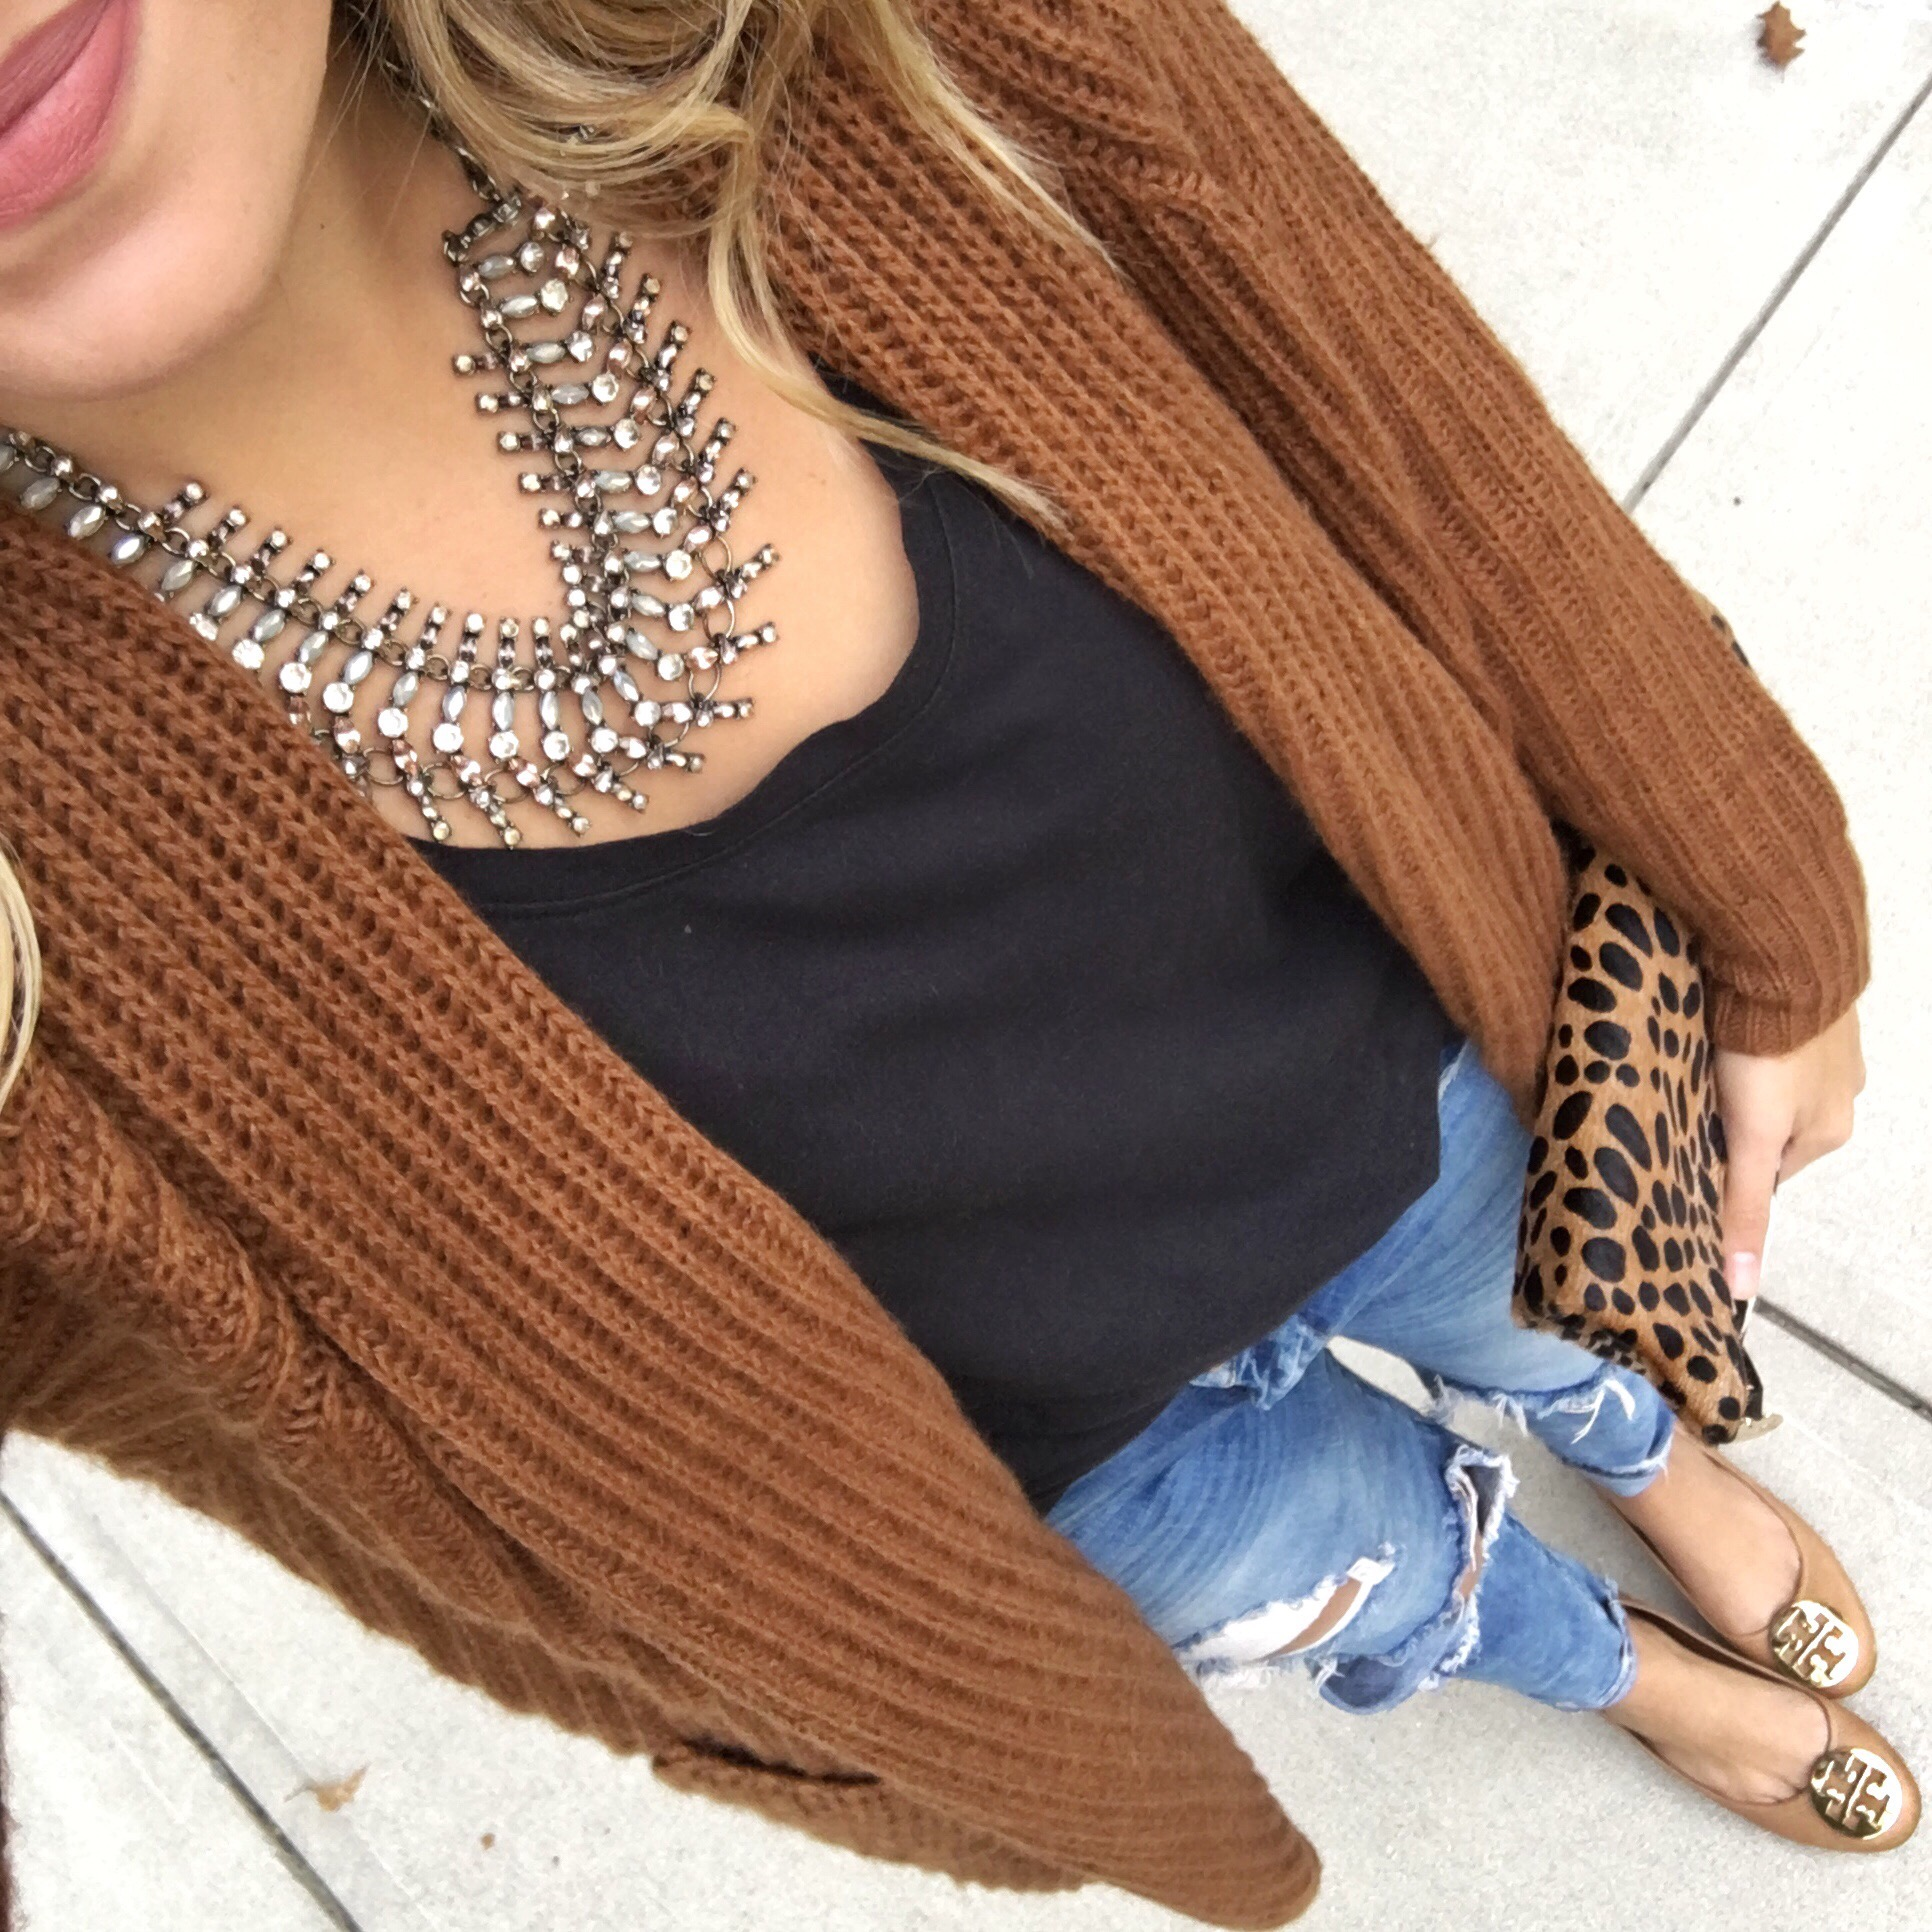 shopbop sale - brown and black winter outfit